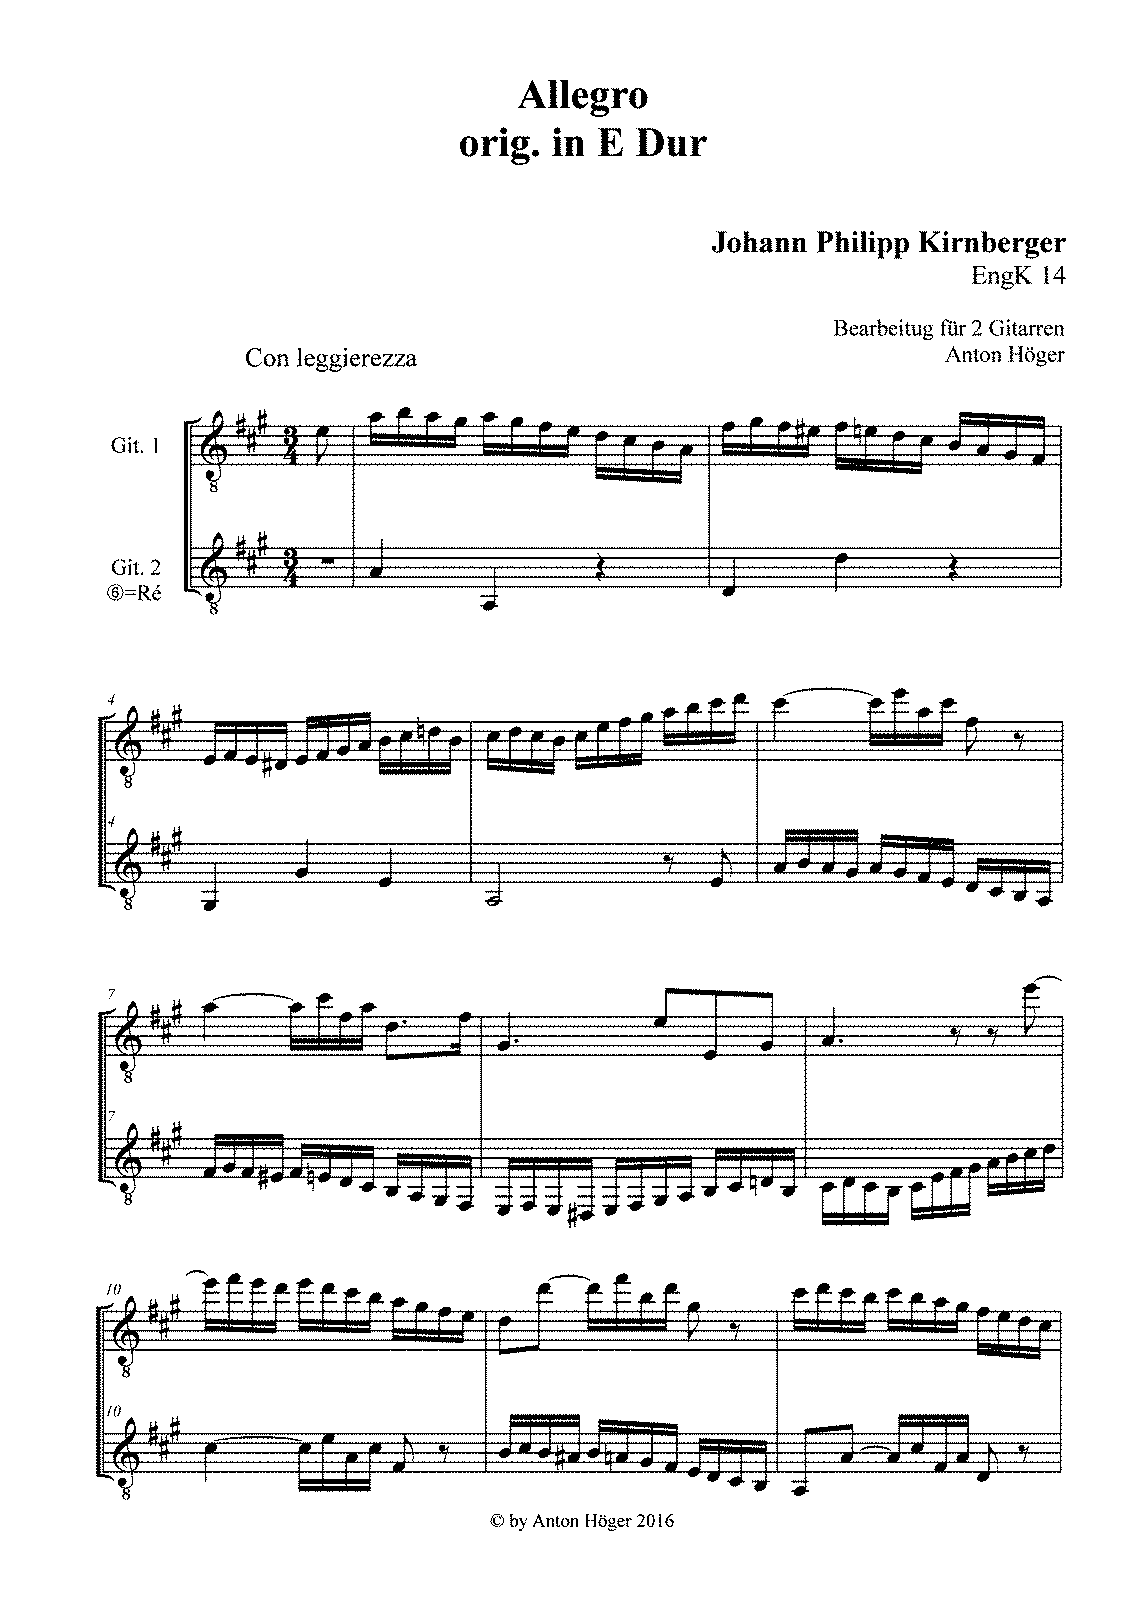 PMLP24622-Kirnberger, Johann Philipp - Allegro in E major, EngK 14-2Git.pdf